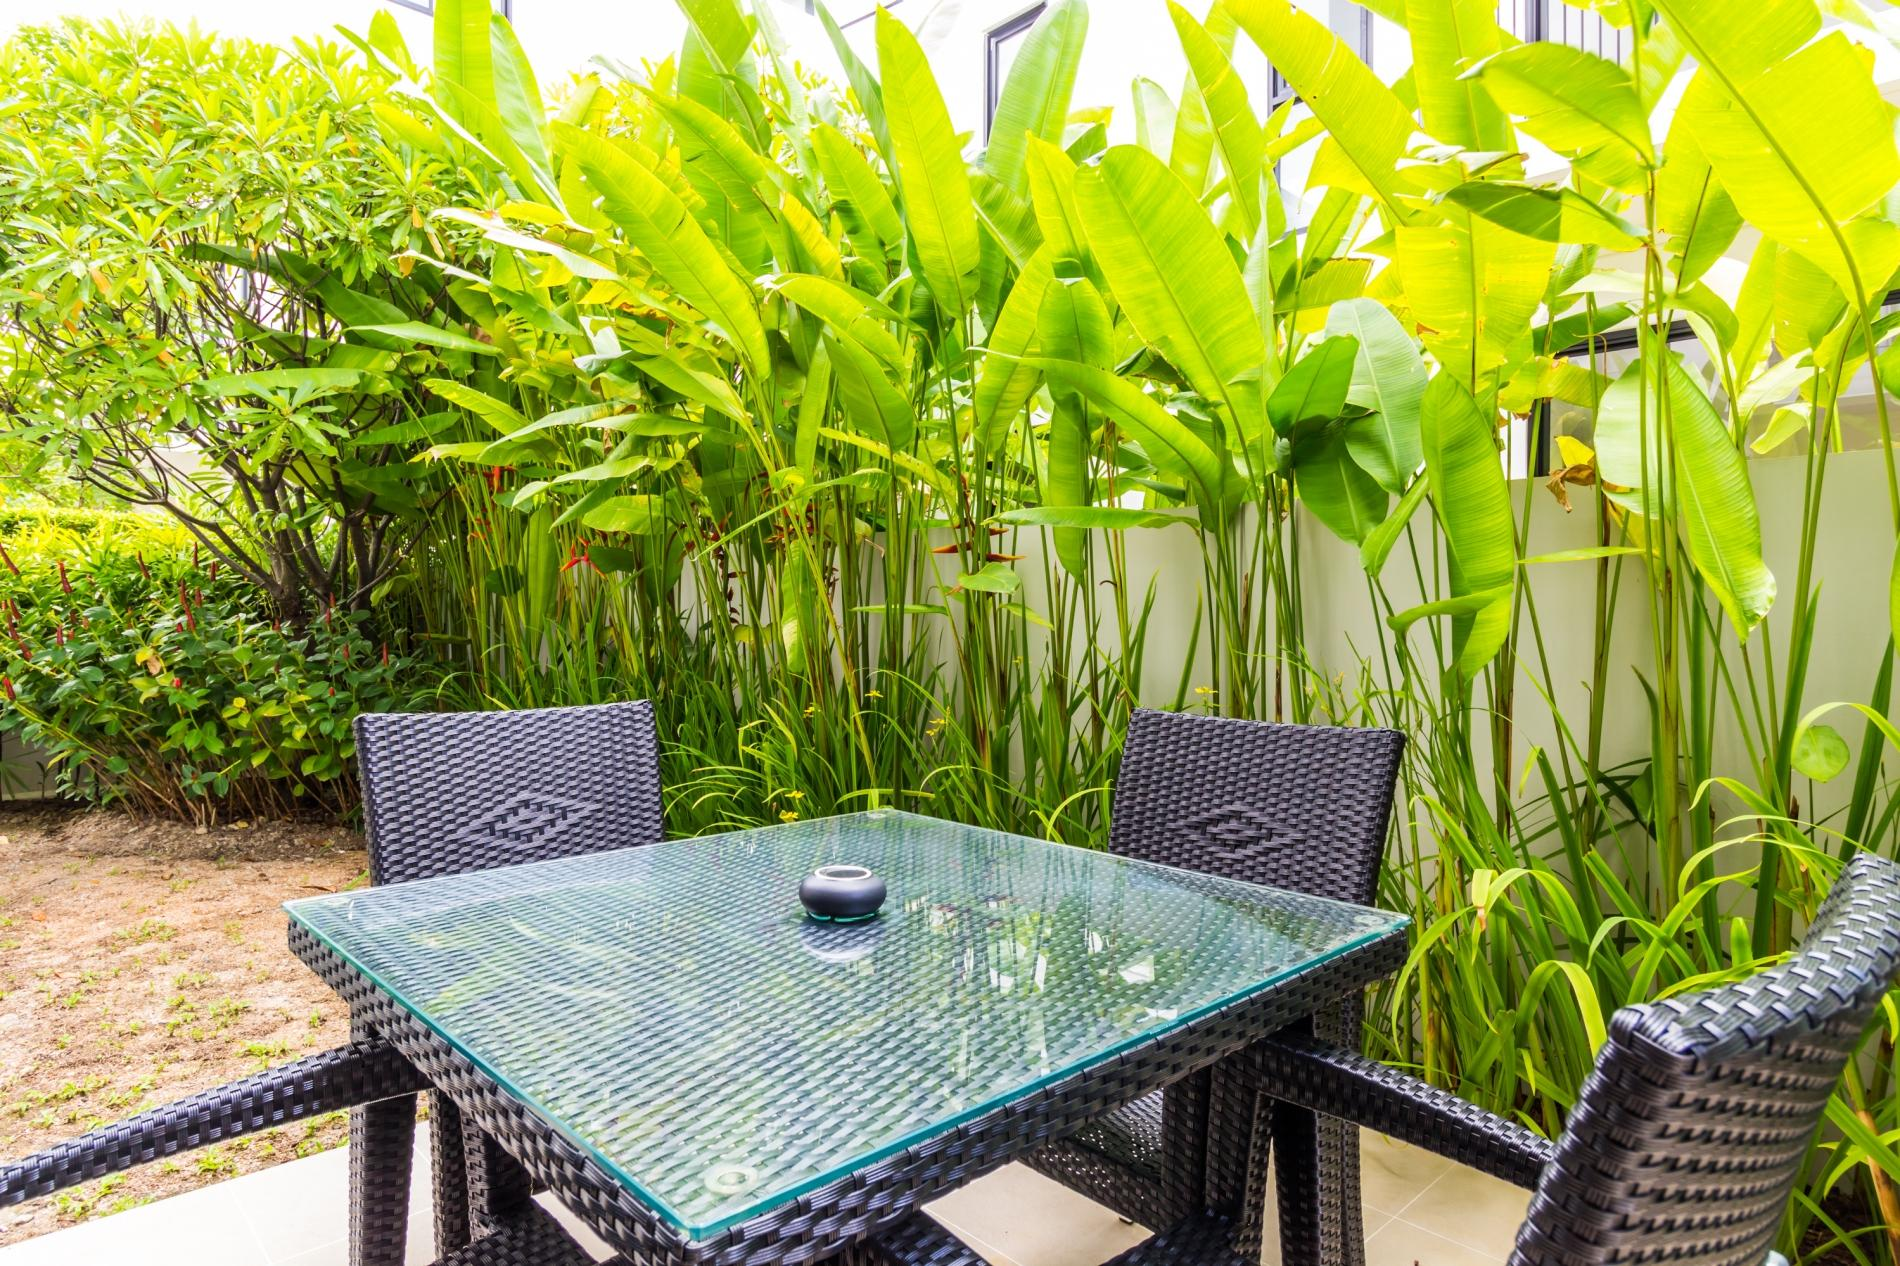 LP101 - Private rooftop pool villa in Laguna for 9 people, near restaurants and shops photo 5691419